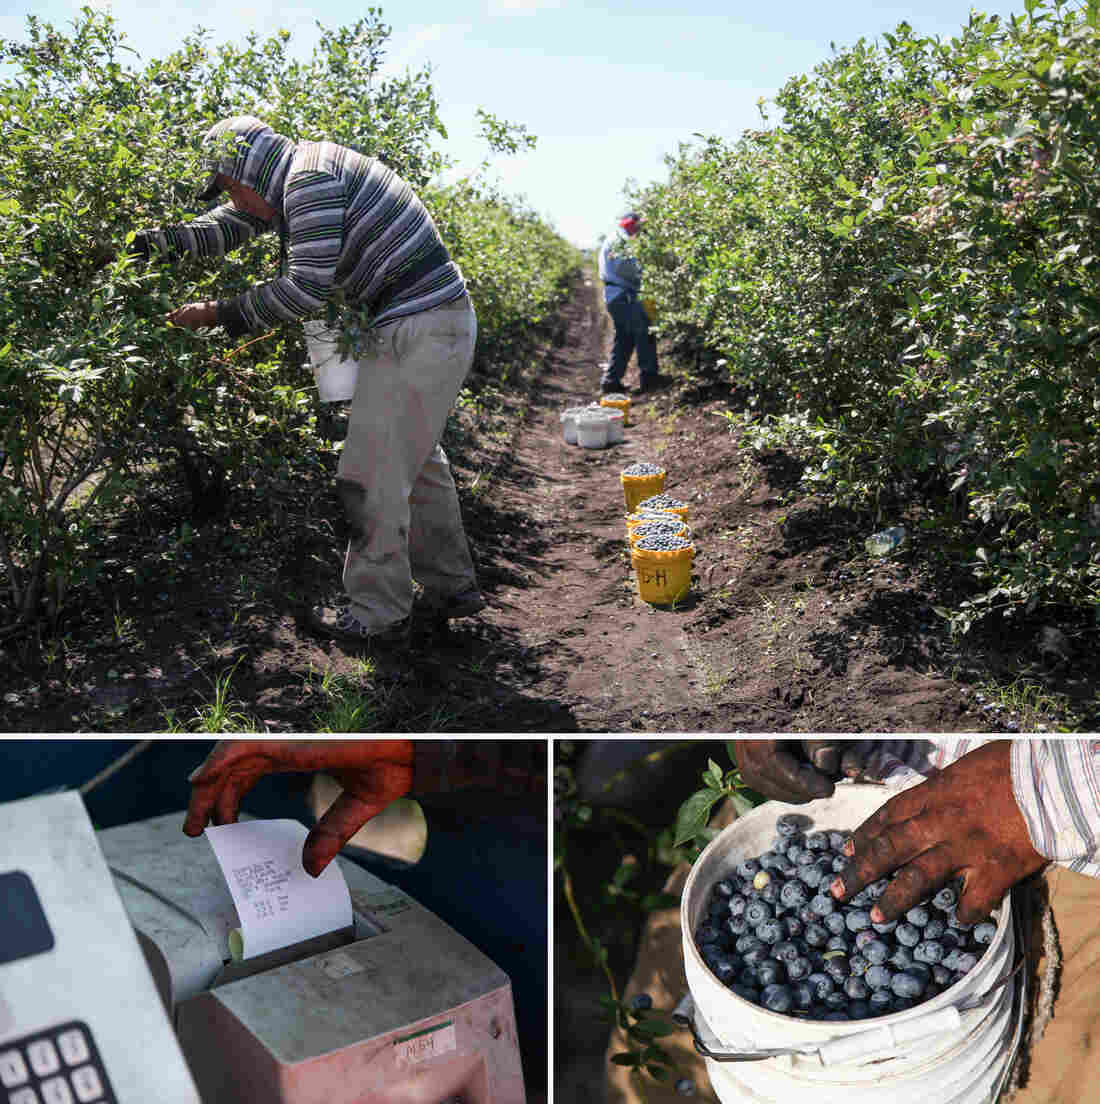 Blueberry pickers are paid by the pound. They take their buckets to a weigh station where they receive a ticket to cash in later.